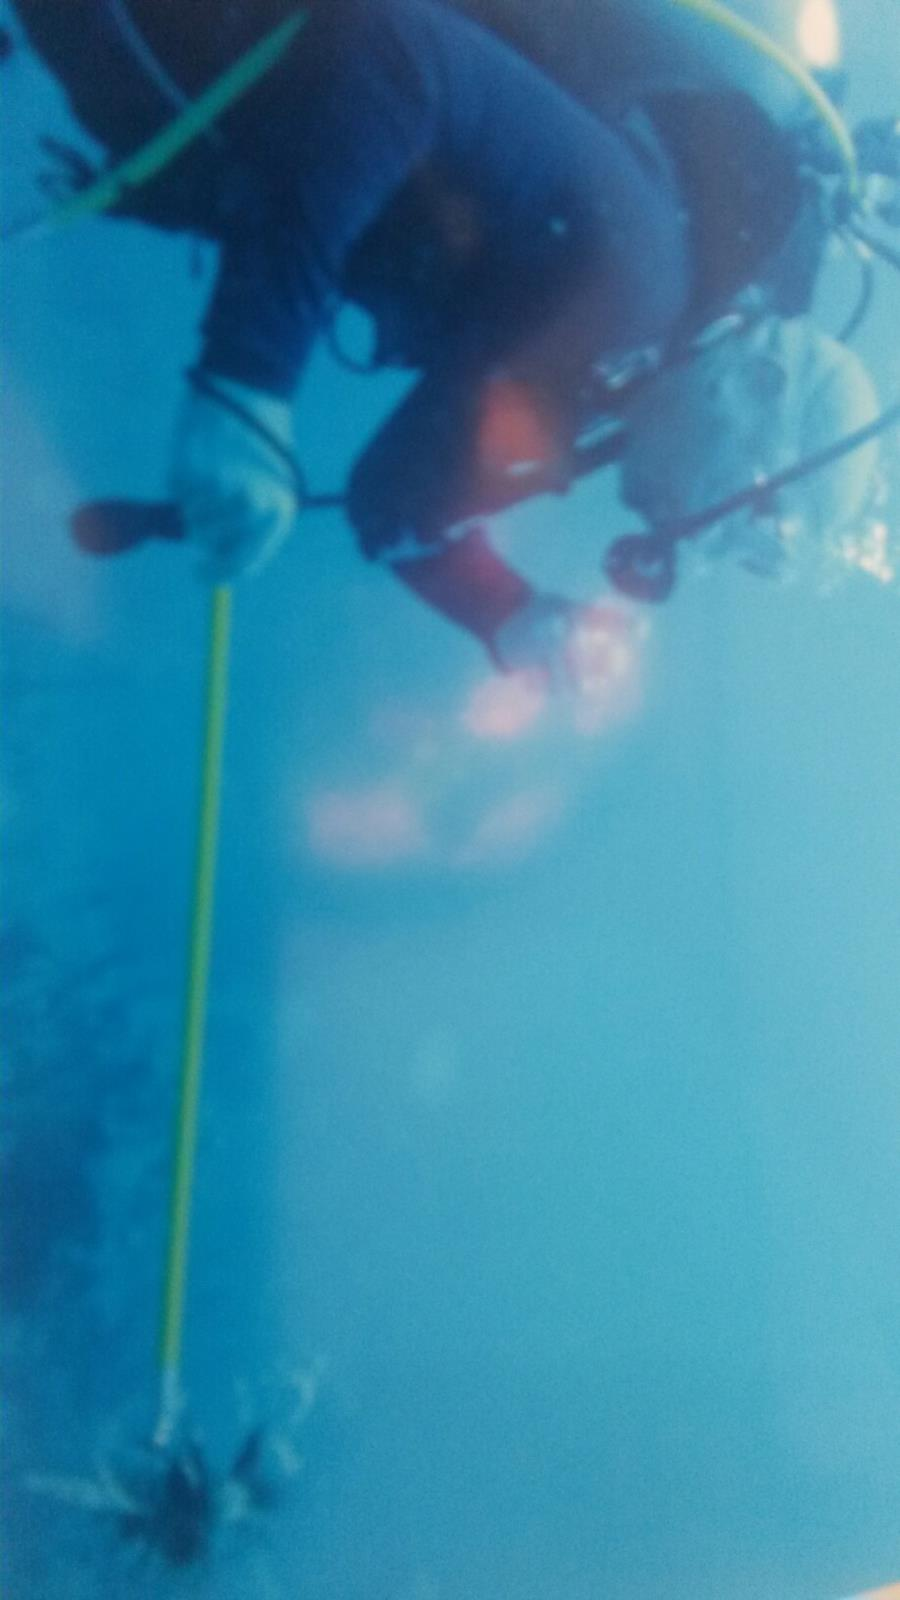 Spear fishing on the Dominicus reff